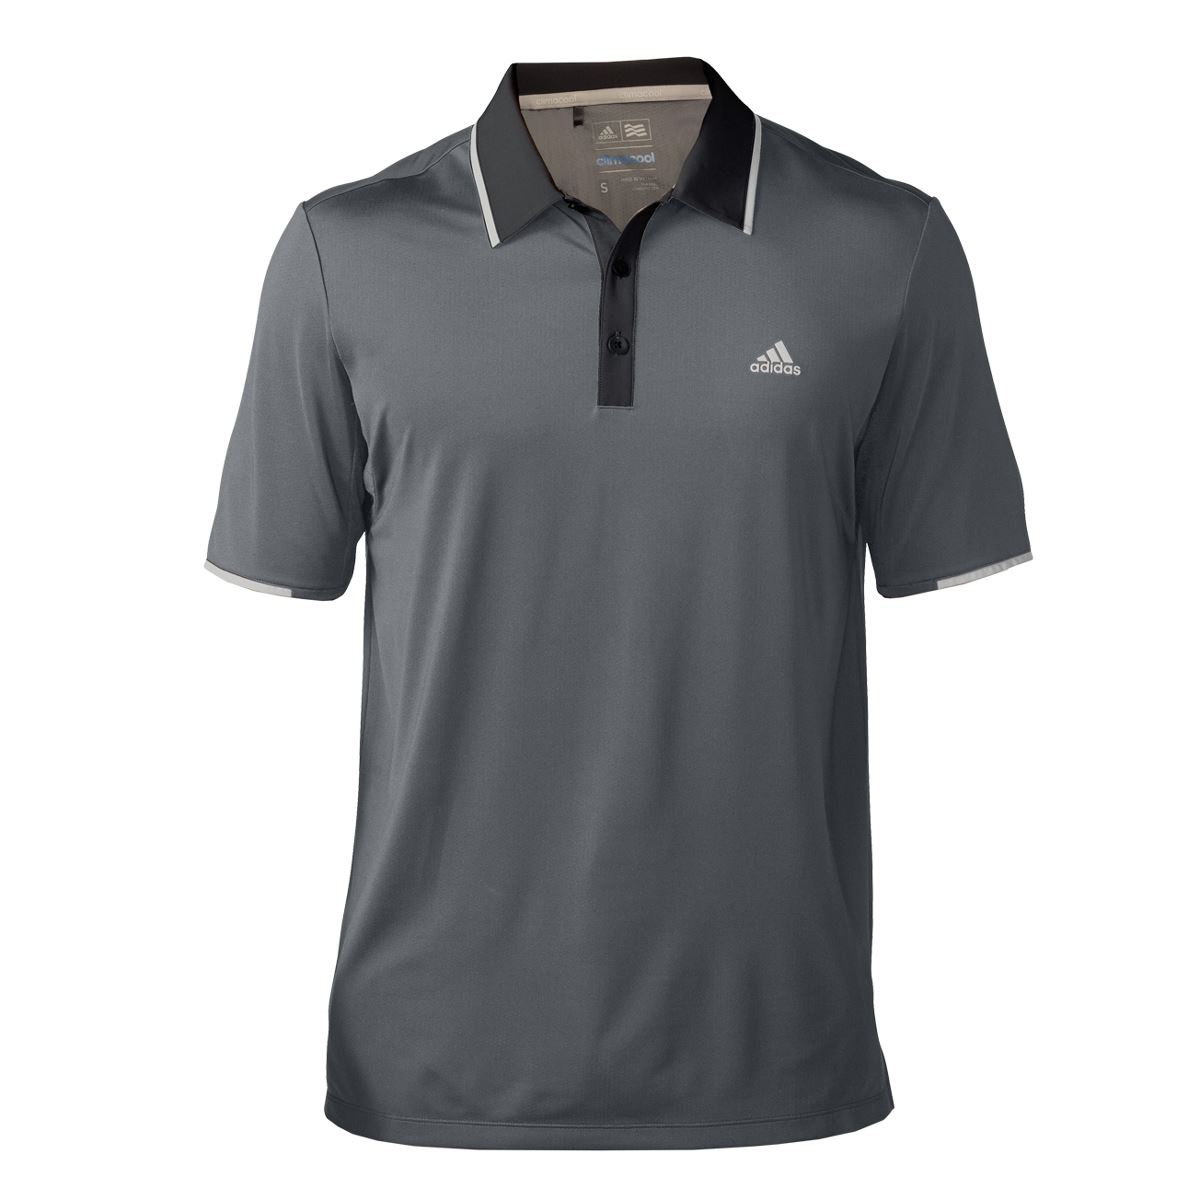 new 2016 adidas mens climacool branded performance golf